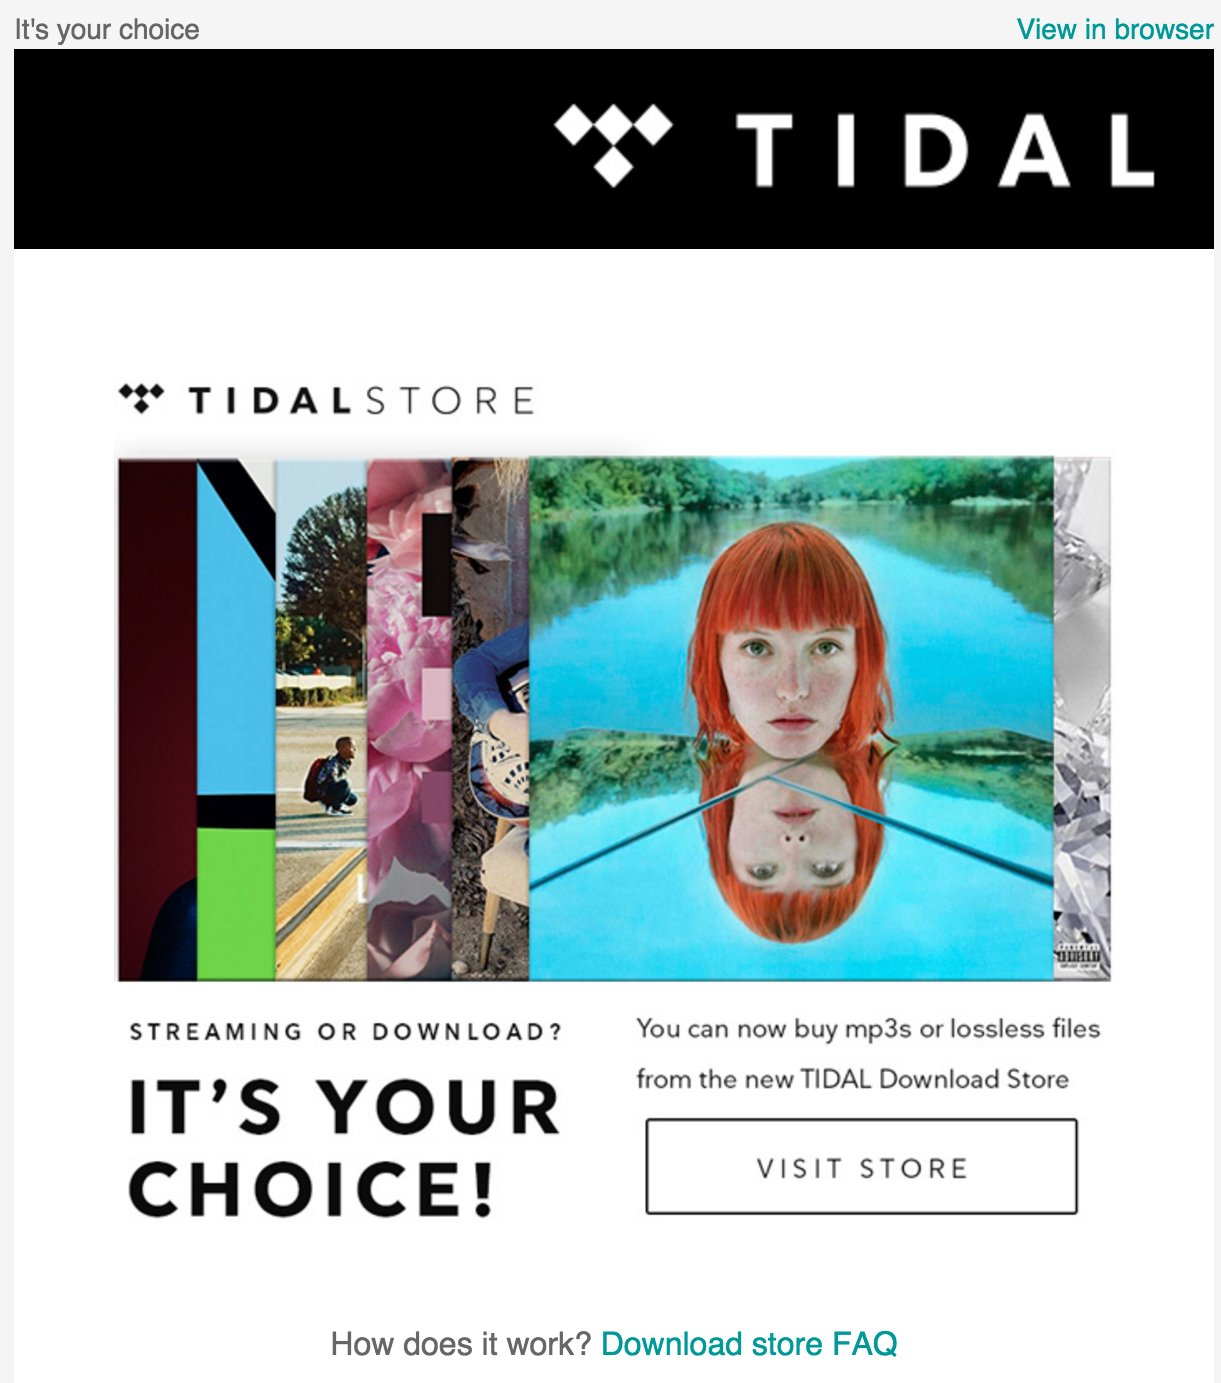 TIDAL Download Store - Music Downloads & Streaming - Audiophile Style